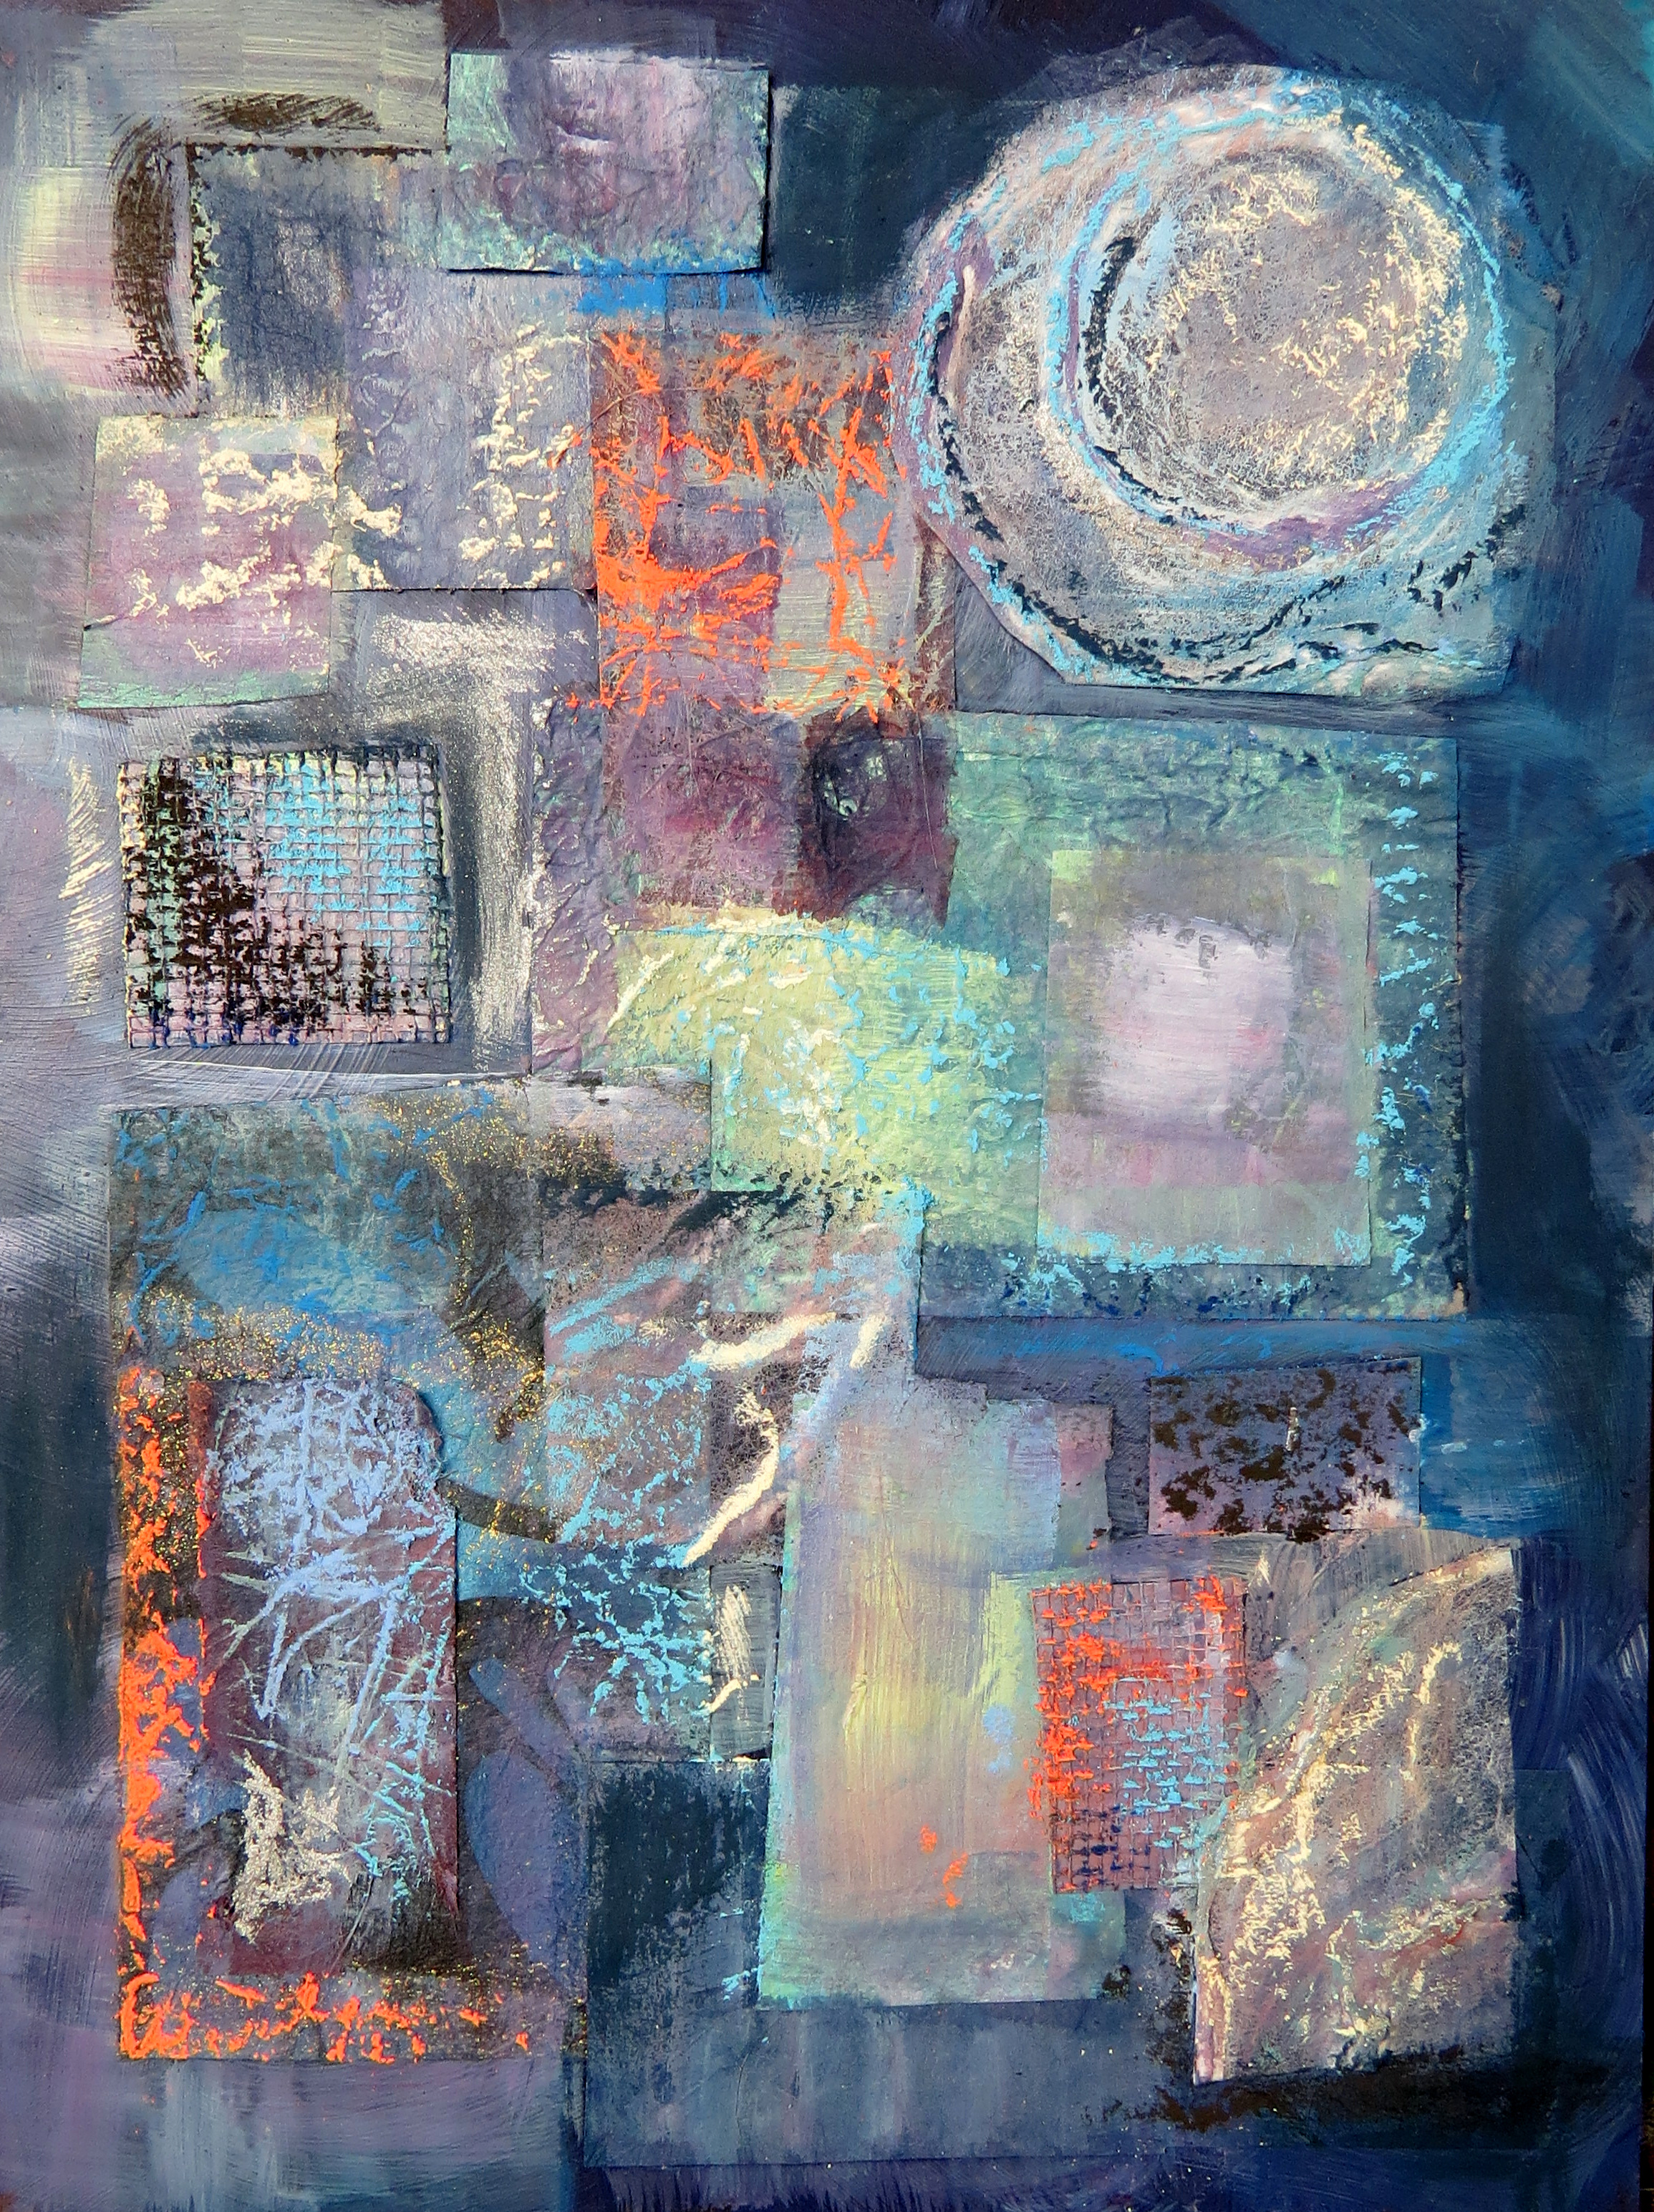 Abstraction in Blue